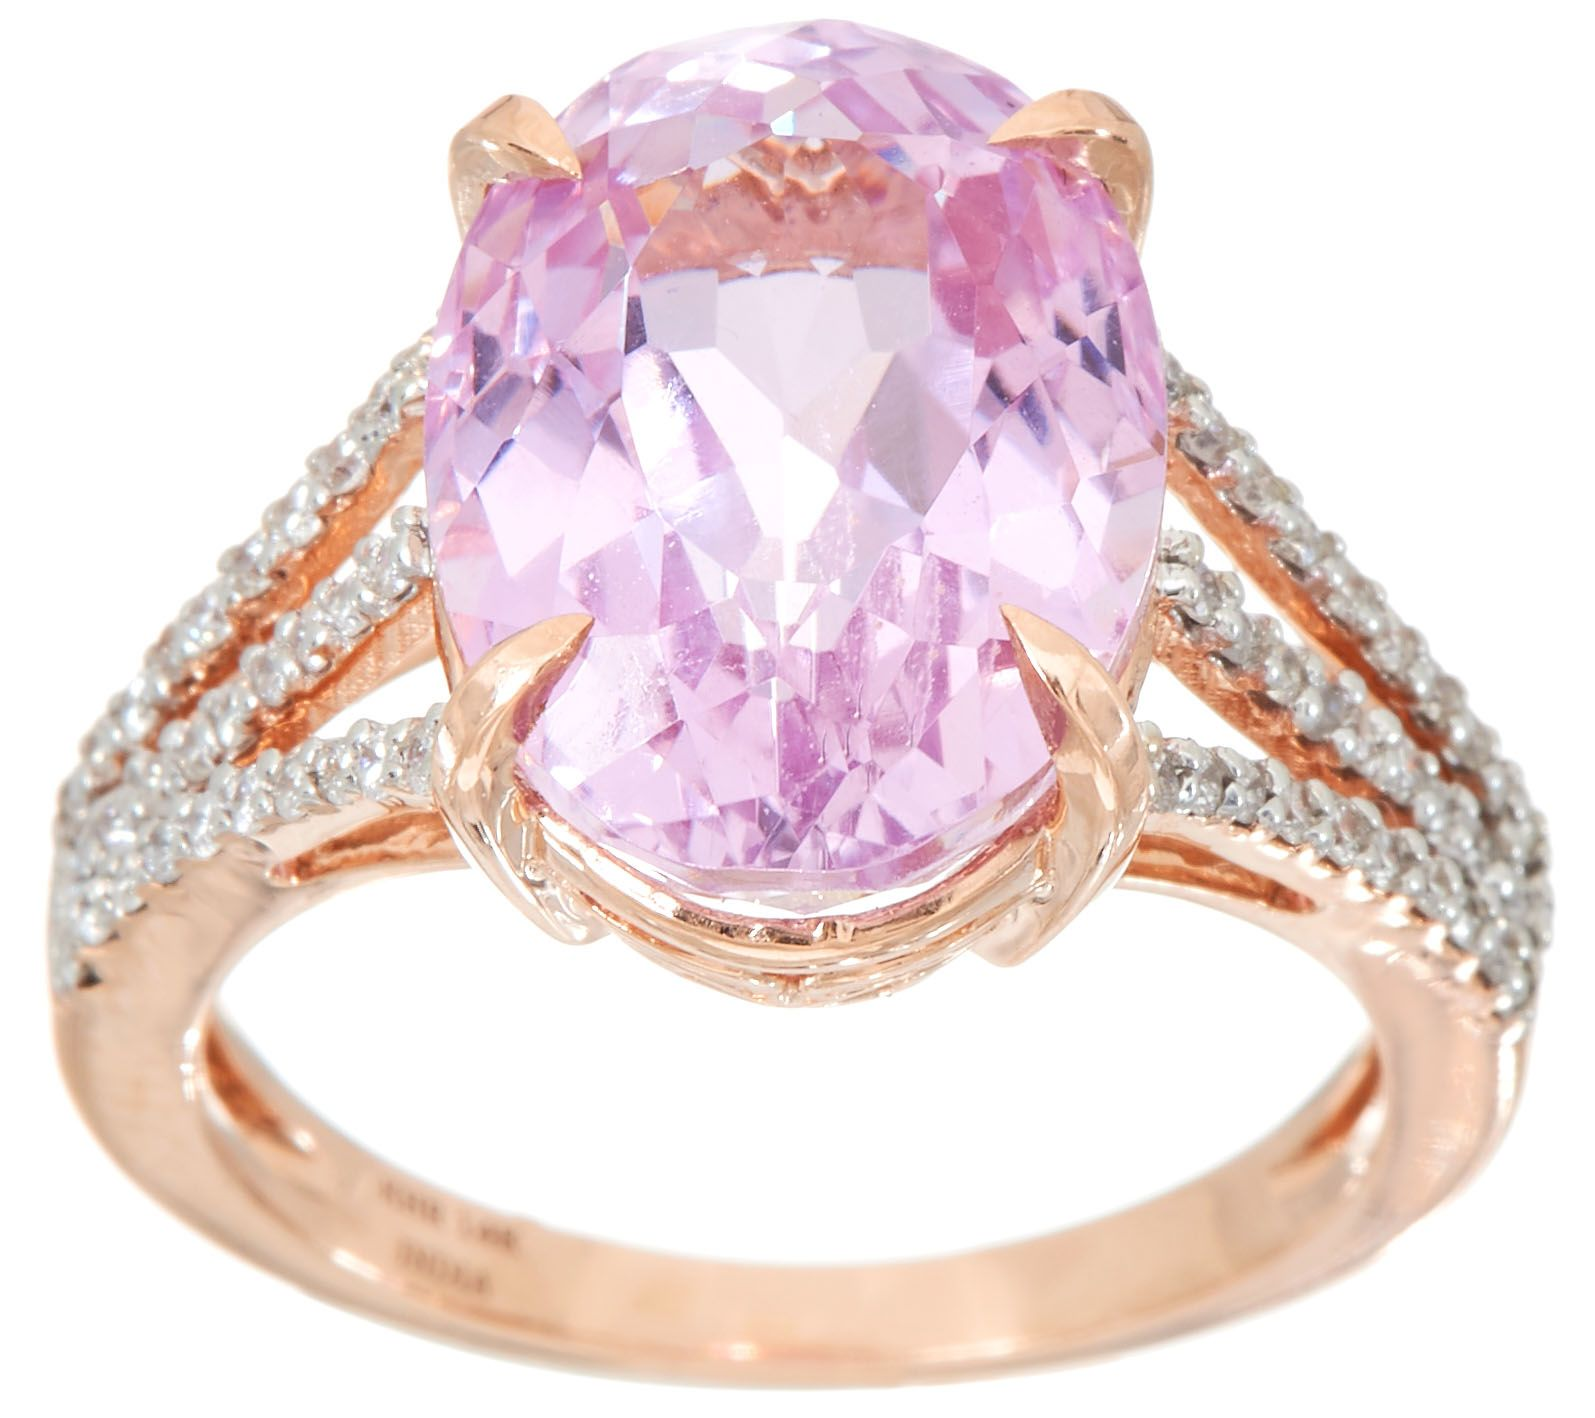 international light three ring blue pink x side the your best contemporary in setting mm colored stones for rings unheated article diamonds platinum gemstones a stone engagement ct round sapphire